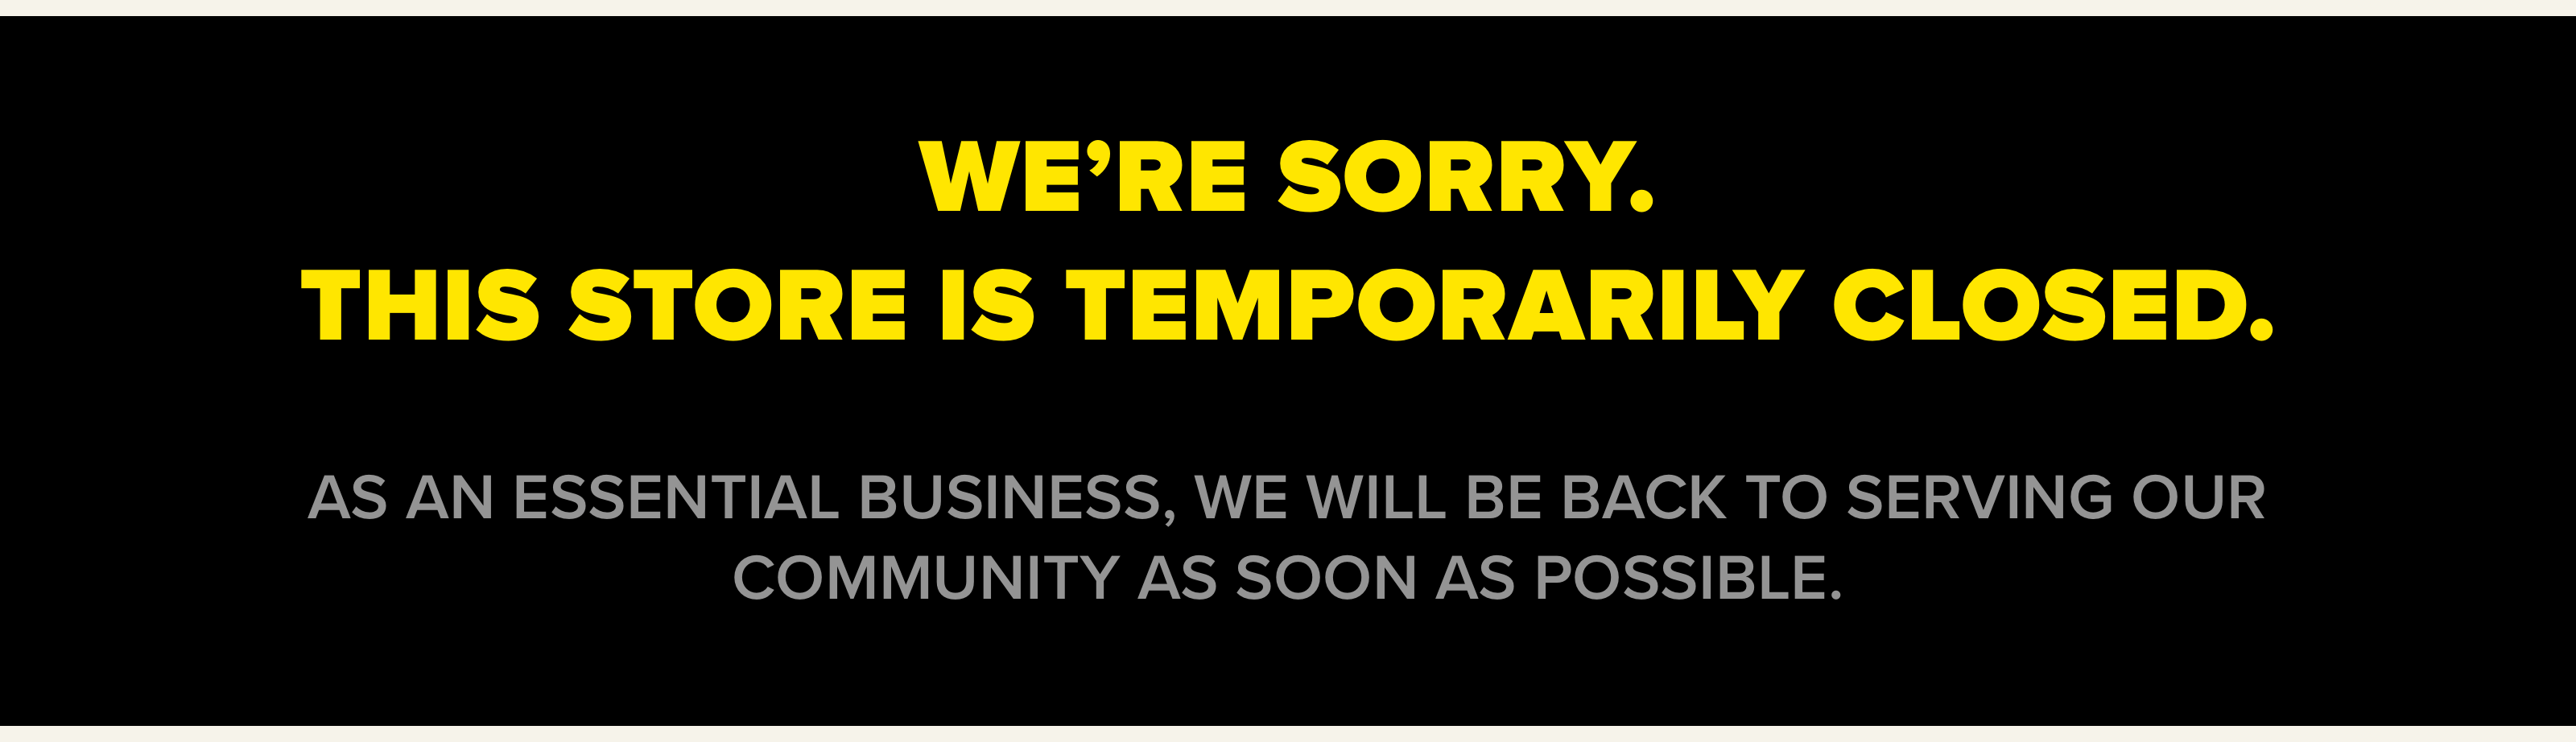 We're sorry. This store is temporarily closed. As an essential business, we will be back to serving our community as soon as possible.